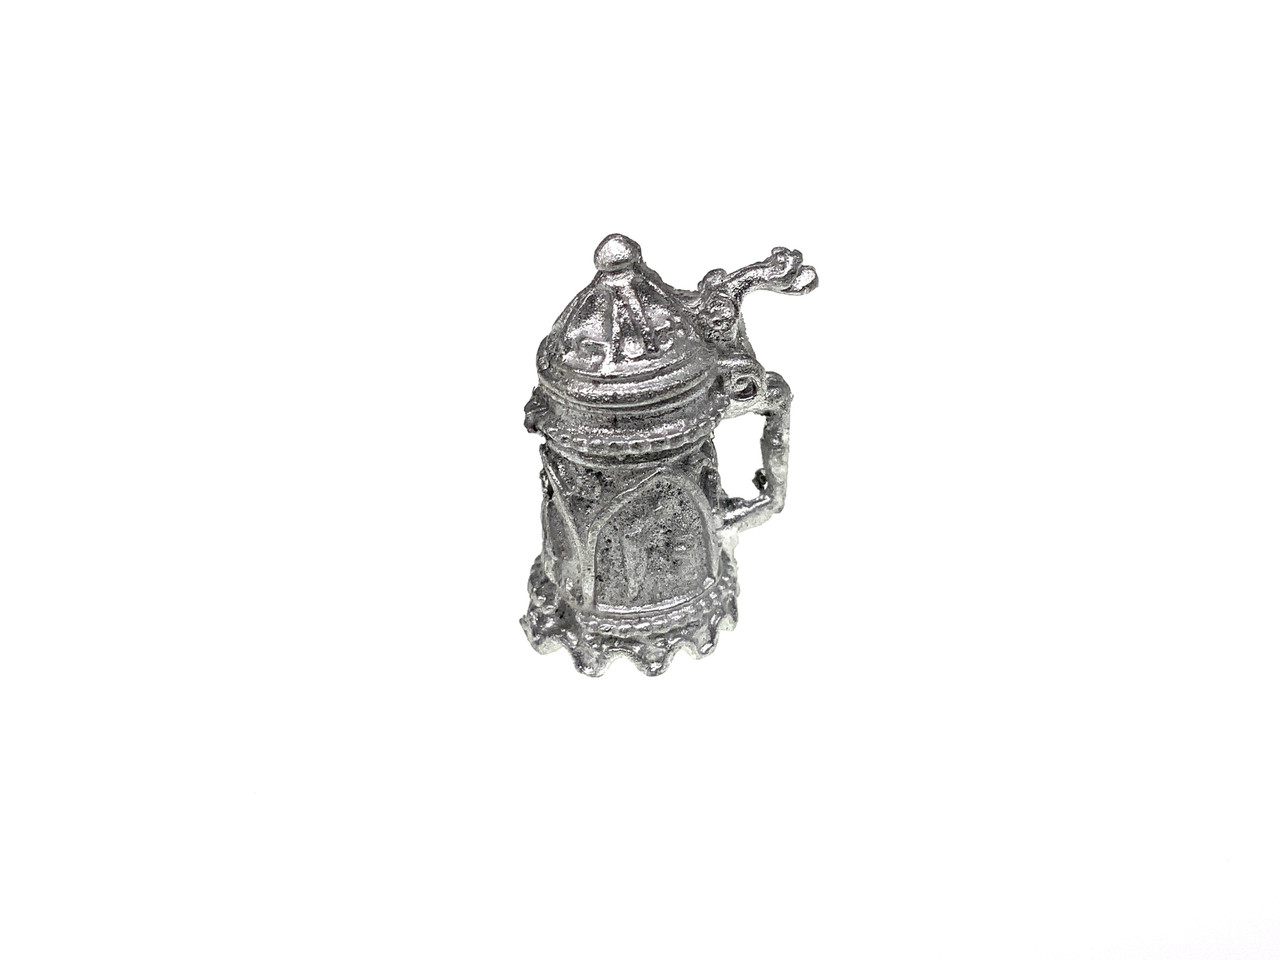 MM-26 Beer Stein Beautifully Detailed Dollhouse Miniature